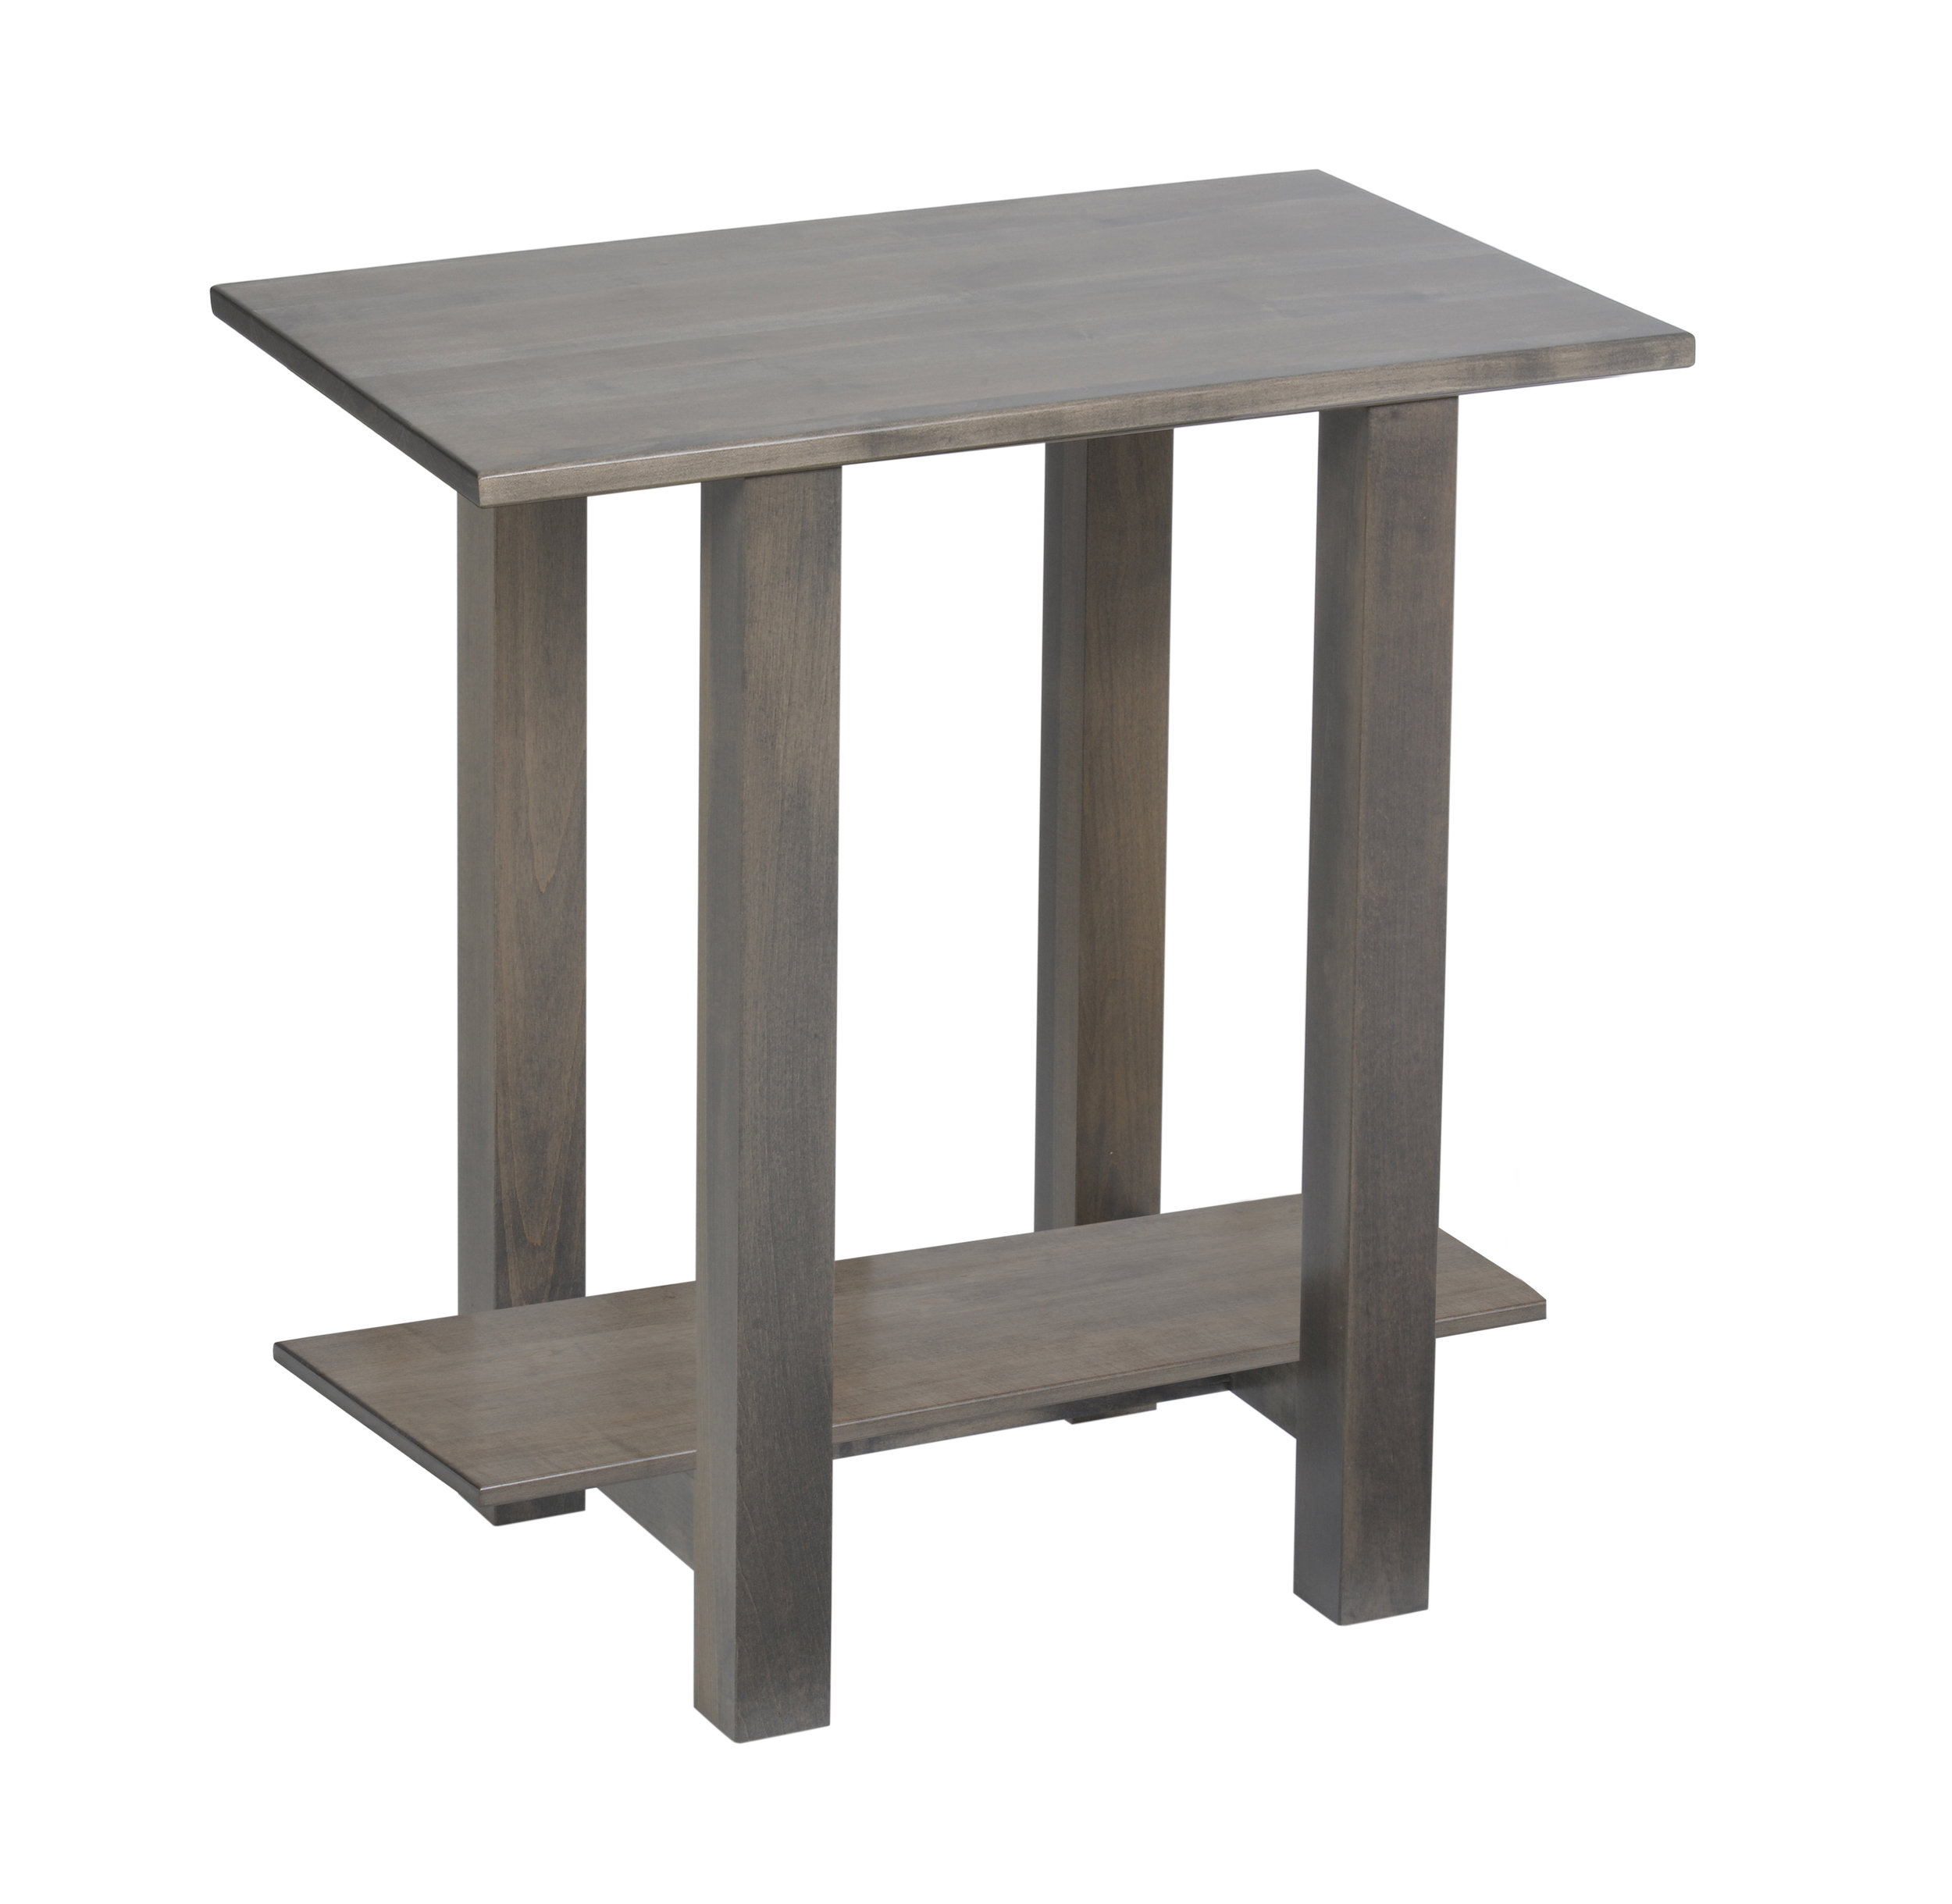 hilton wood chairside table